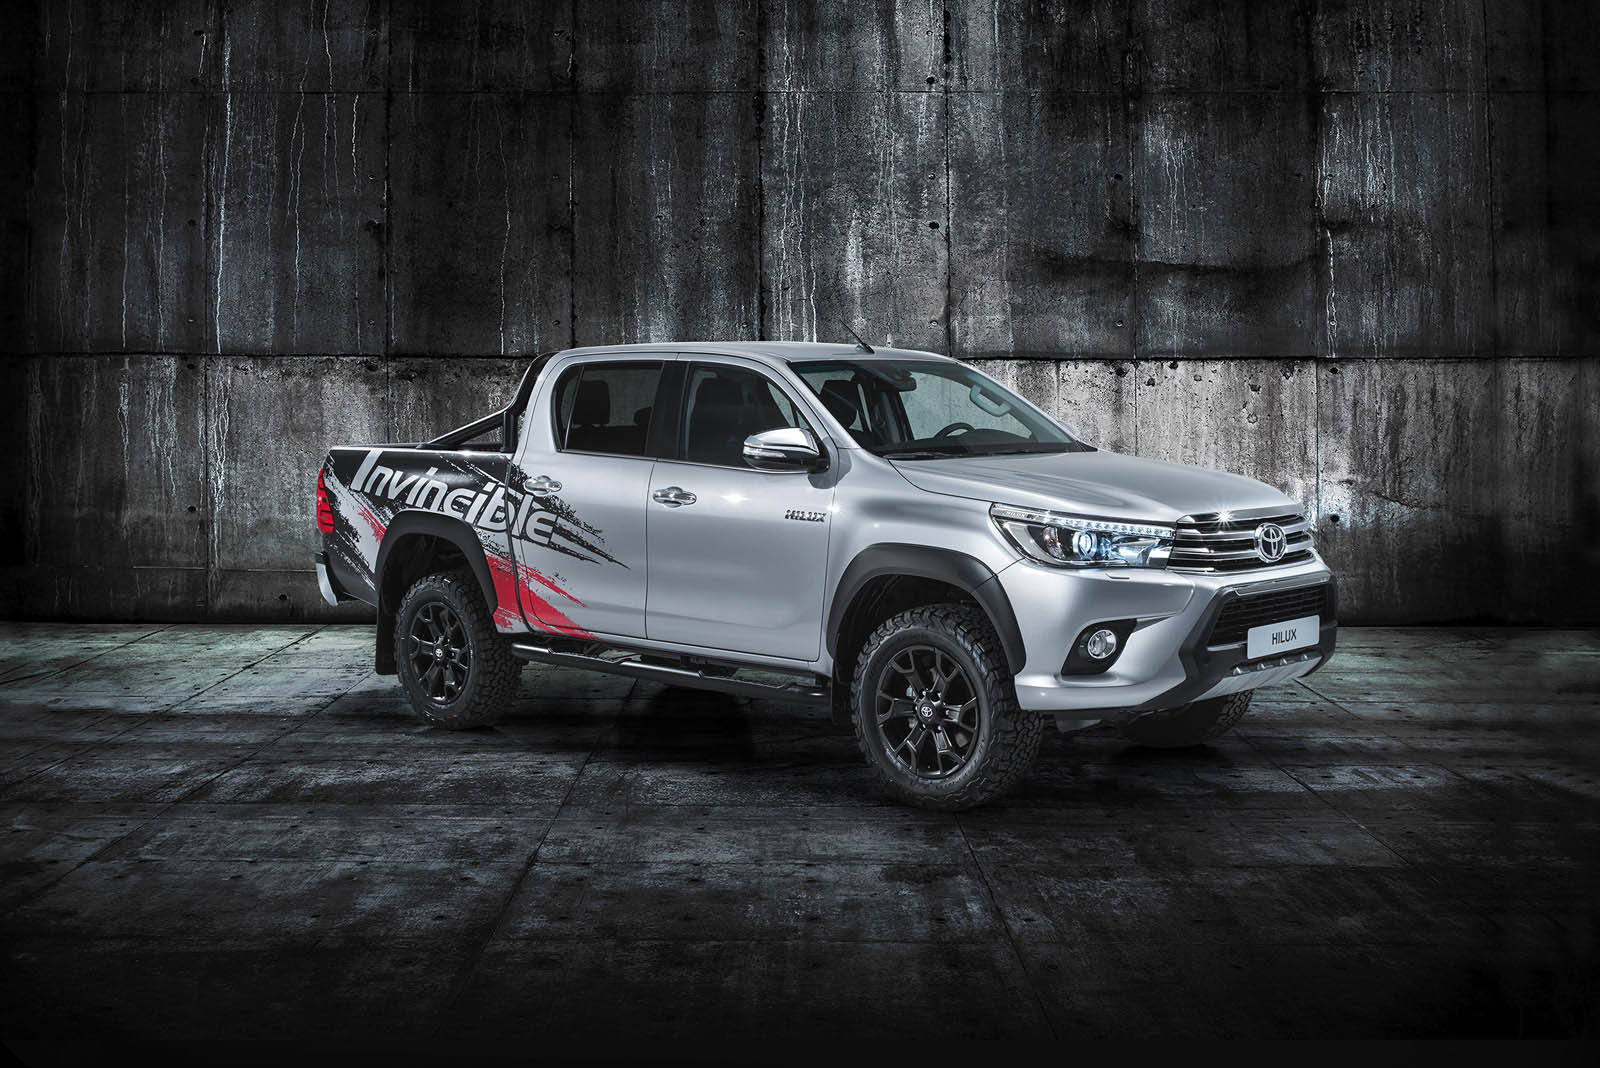 Toyota Hilux Invincible (2)